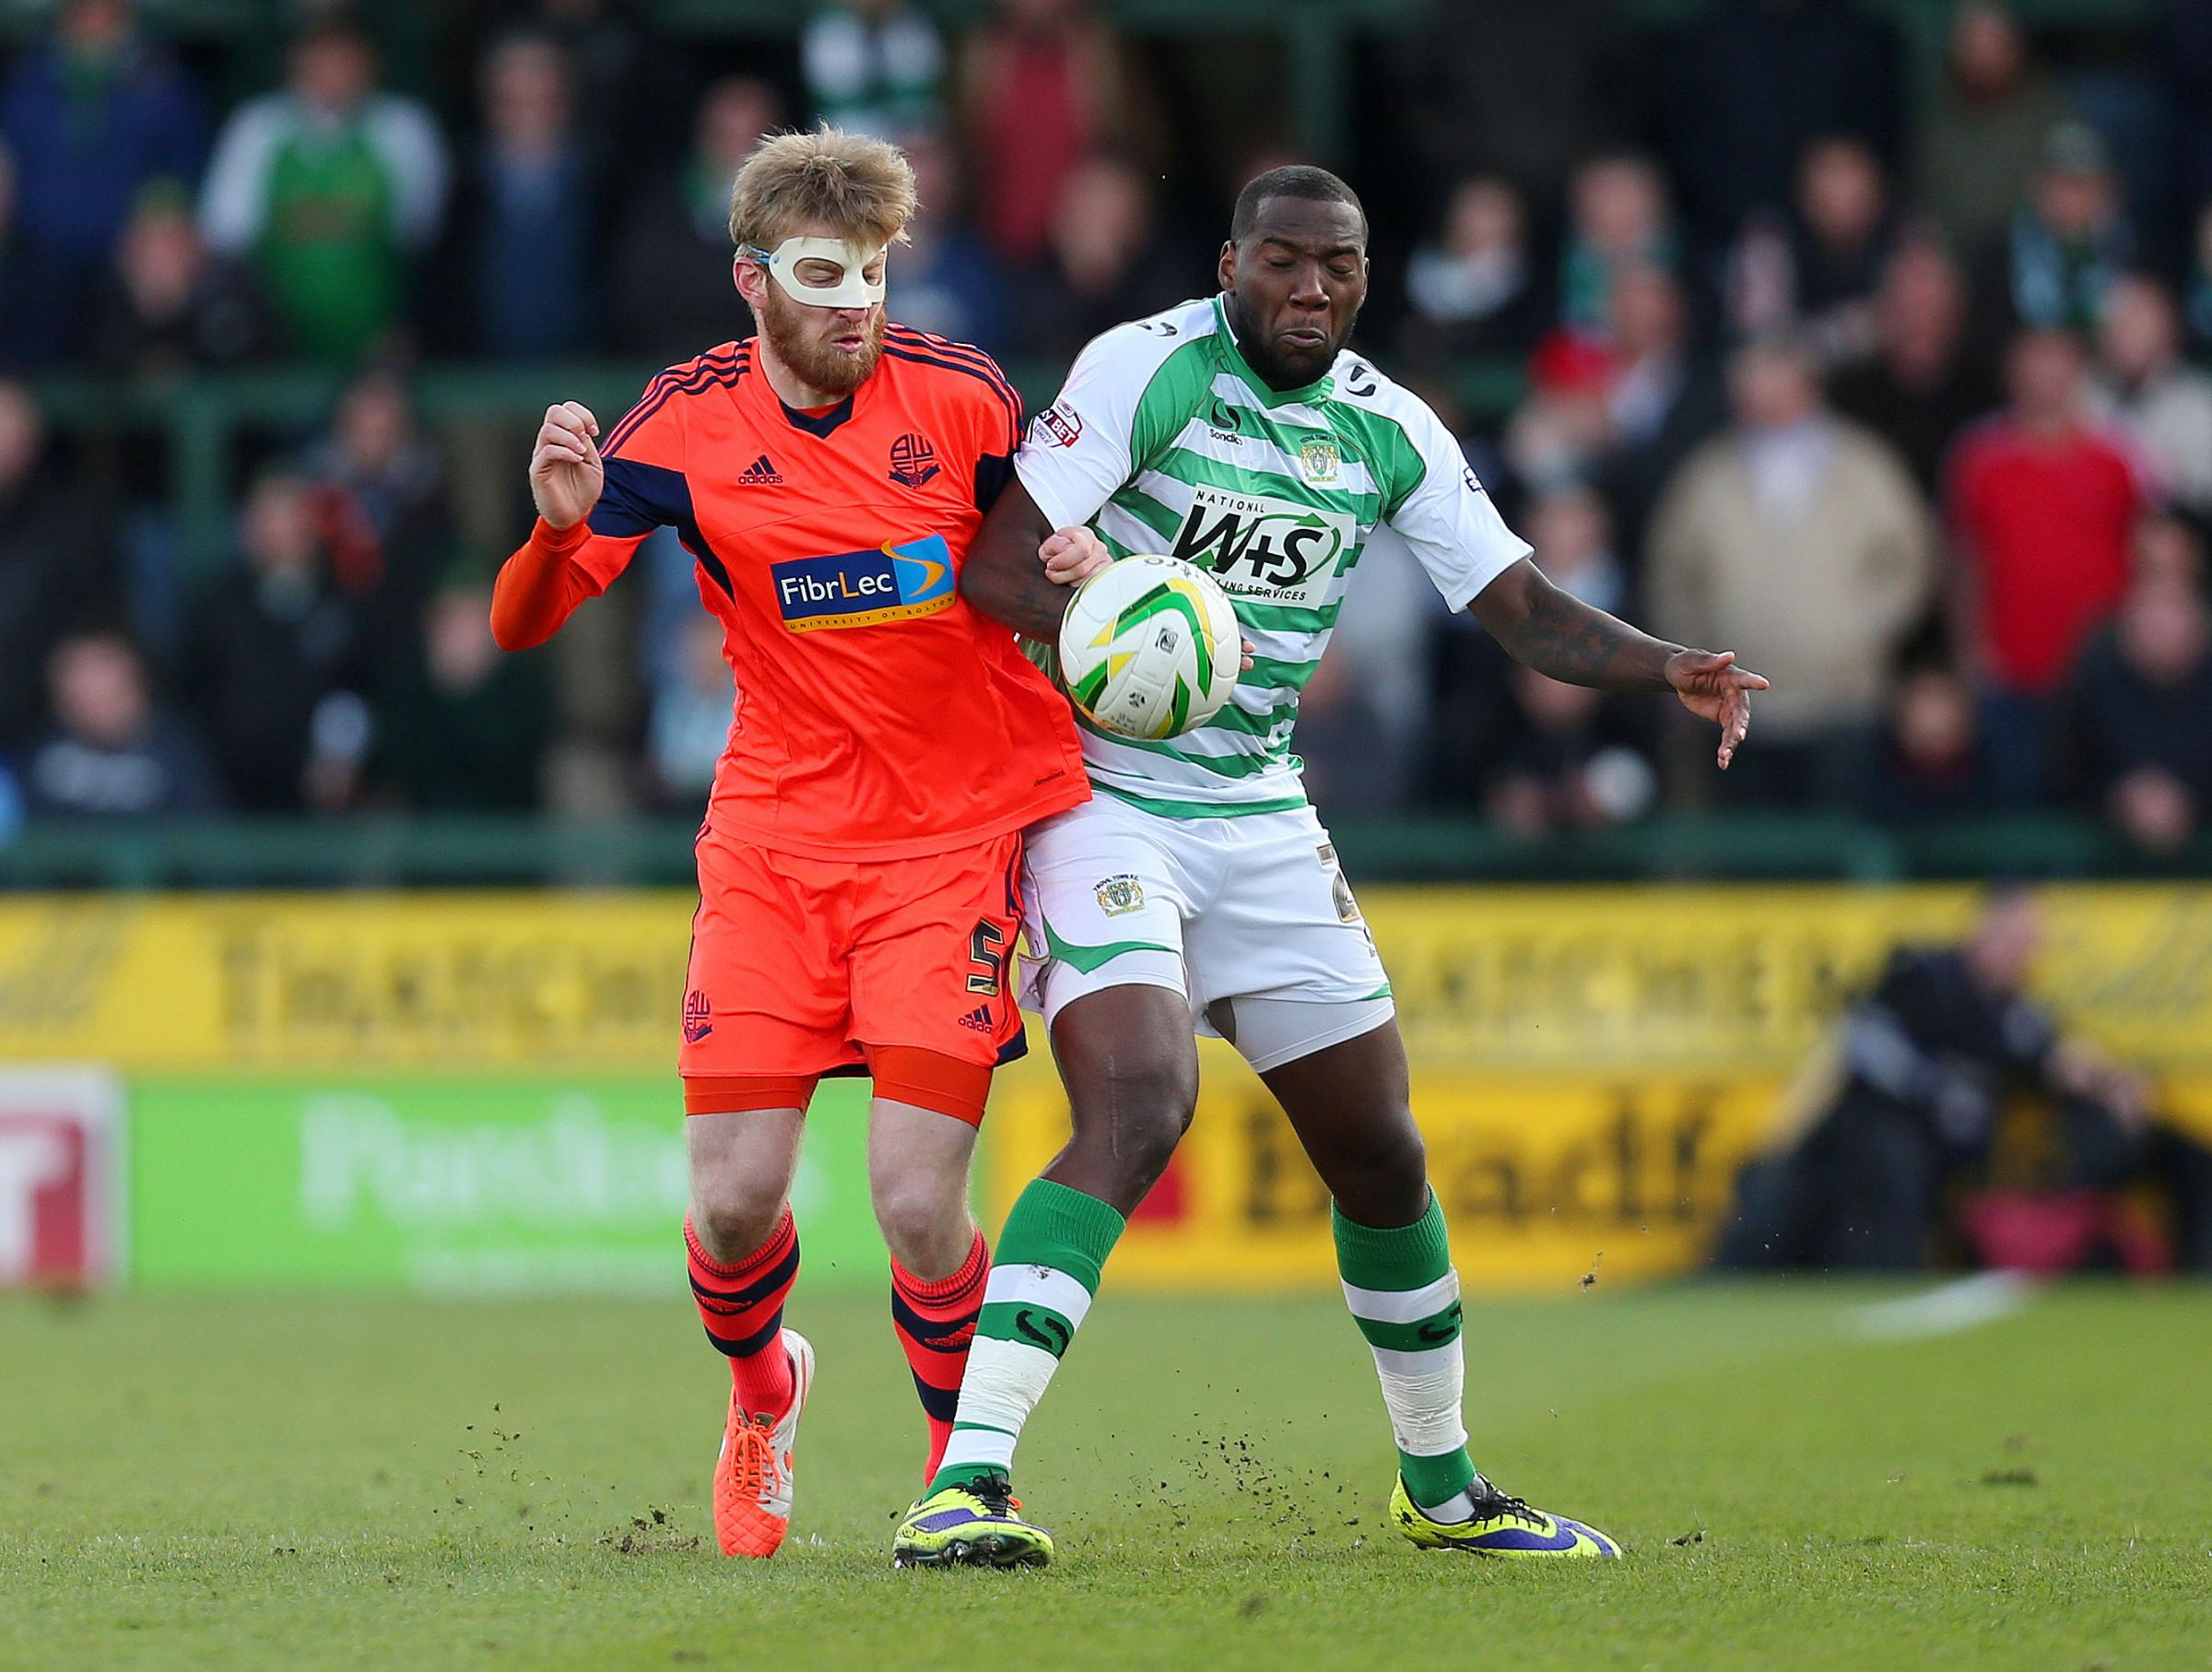 Tim Ream wants to cap a great season at Wanderers with a World Cup campaign